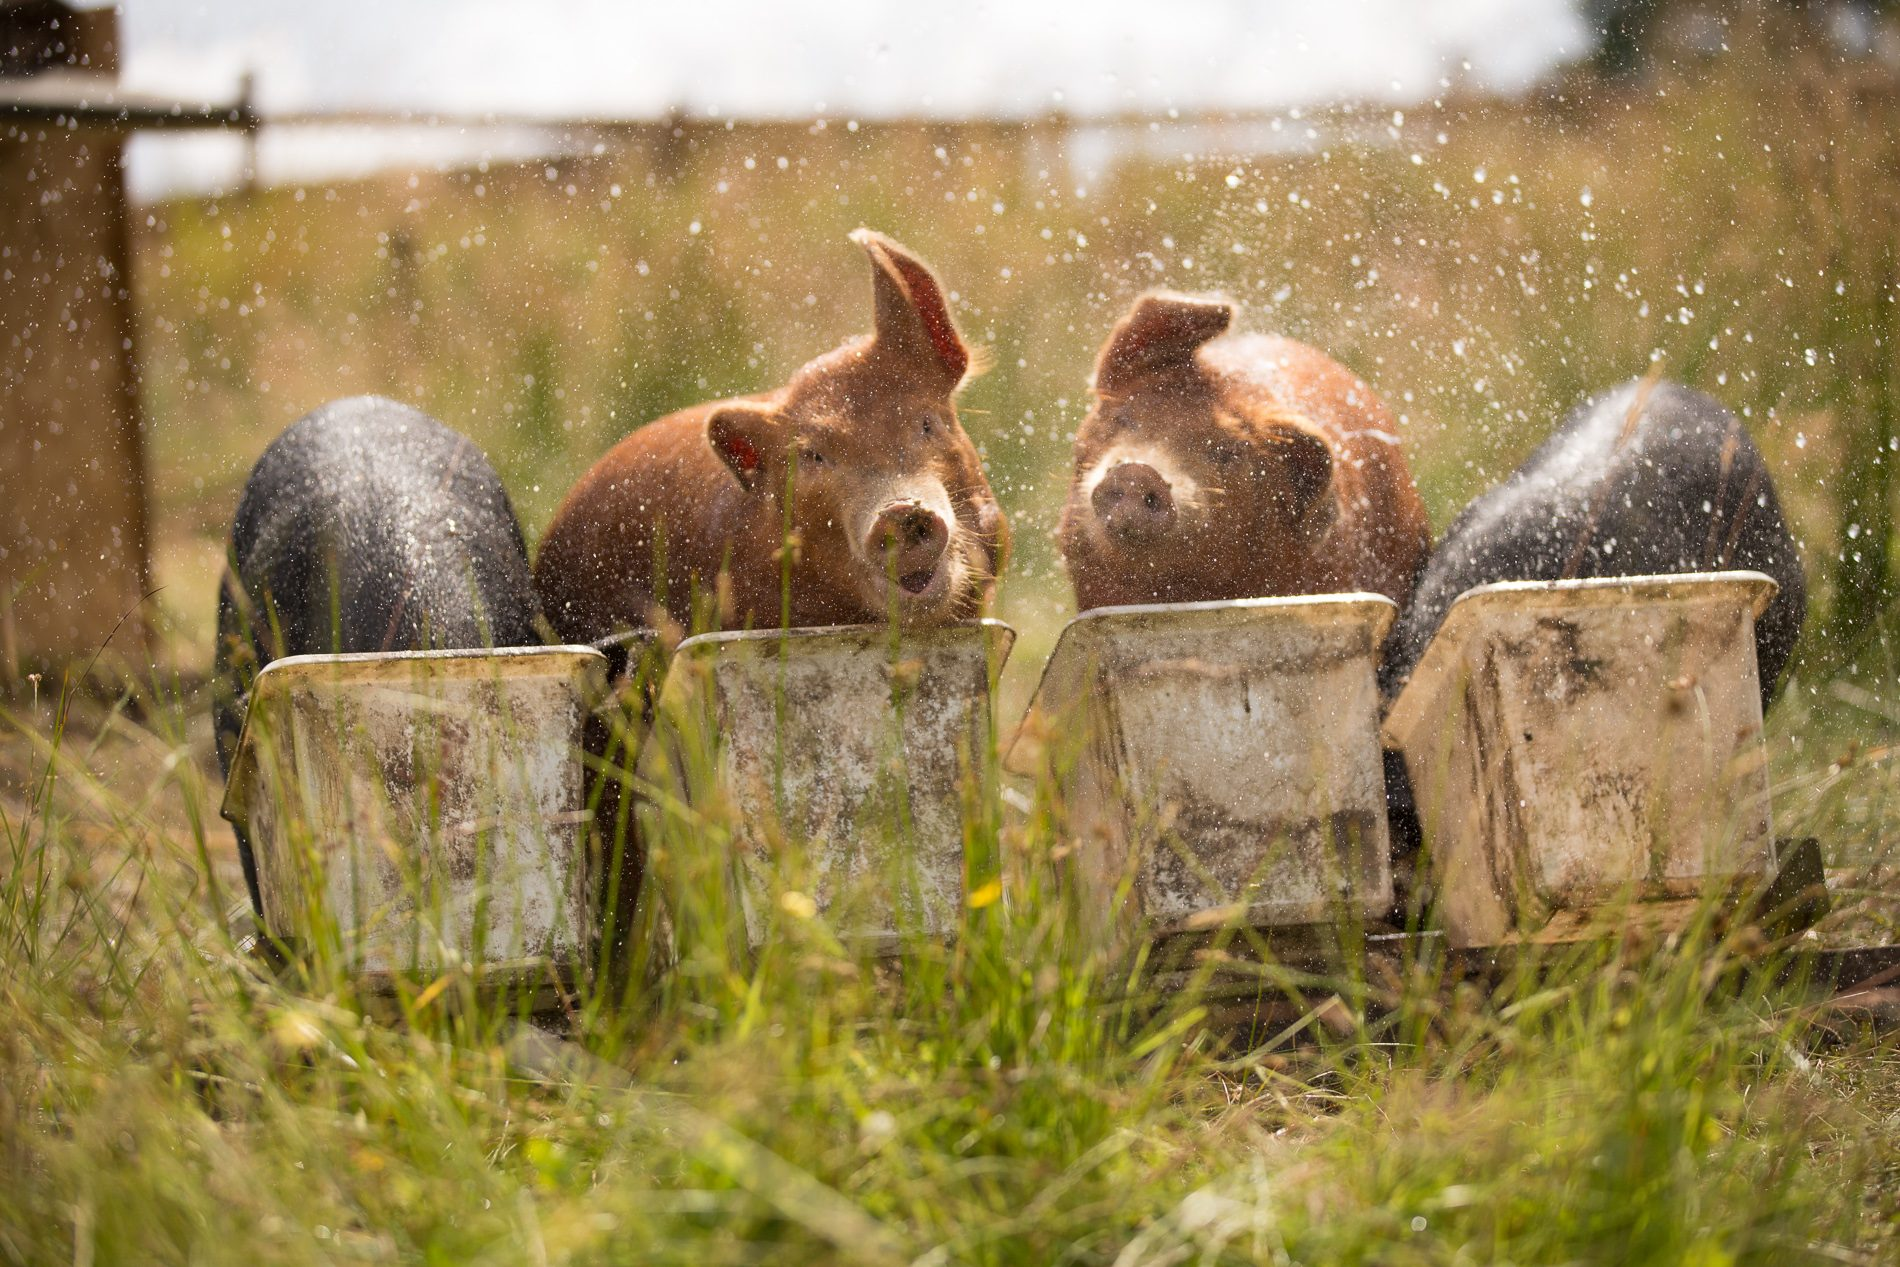 More than 300,000 Crate-Free Pigs Raised in Three Years; and Your 5-A-Day